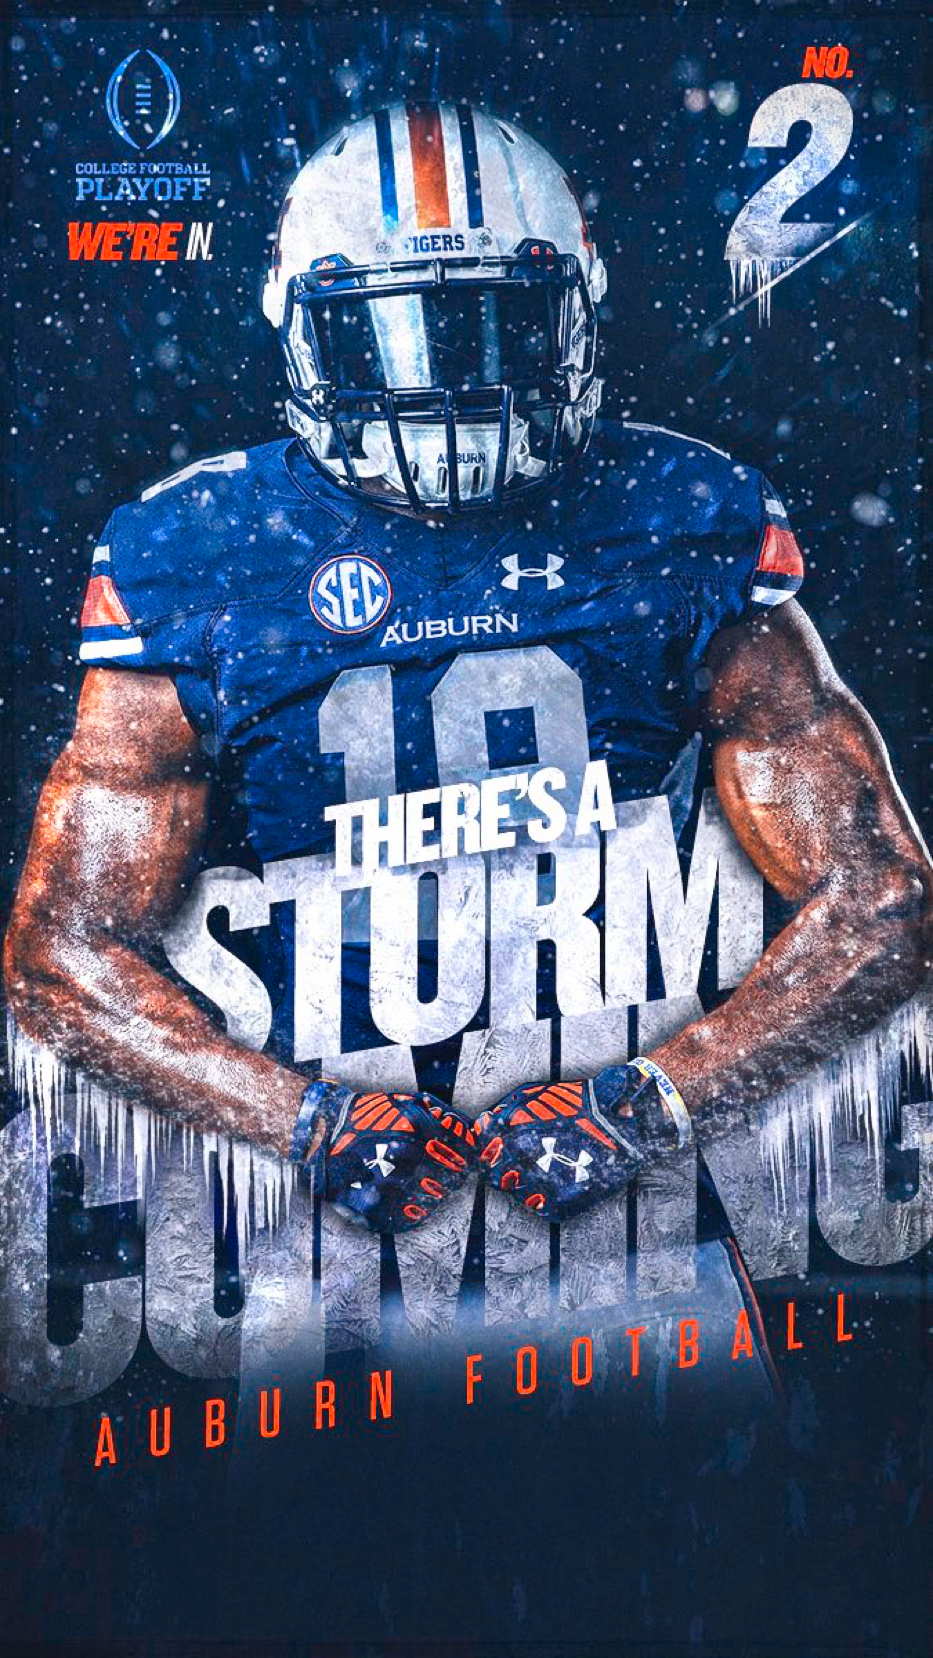 Auburn Sports Graphic Design Football Design Sports Wallpapers